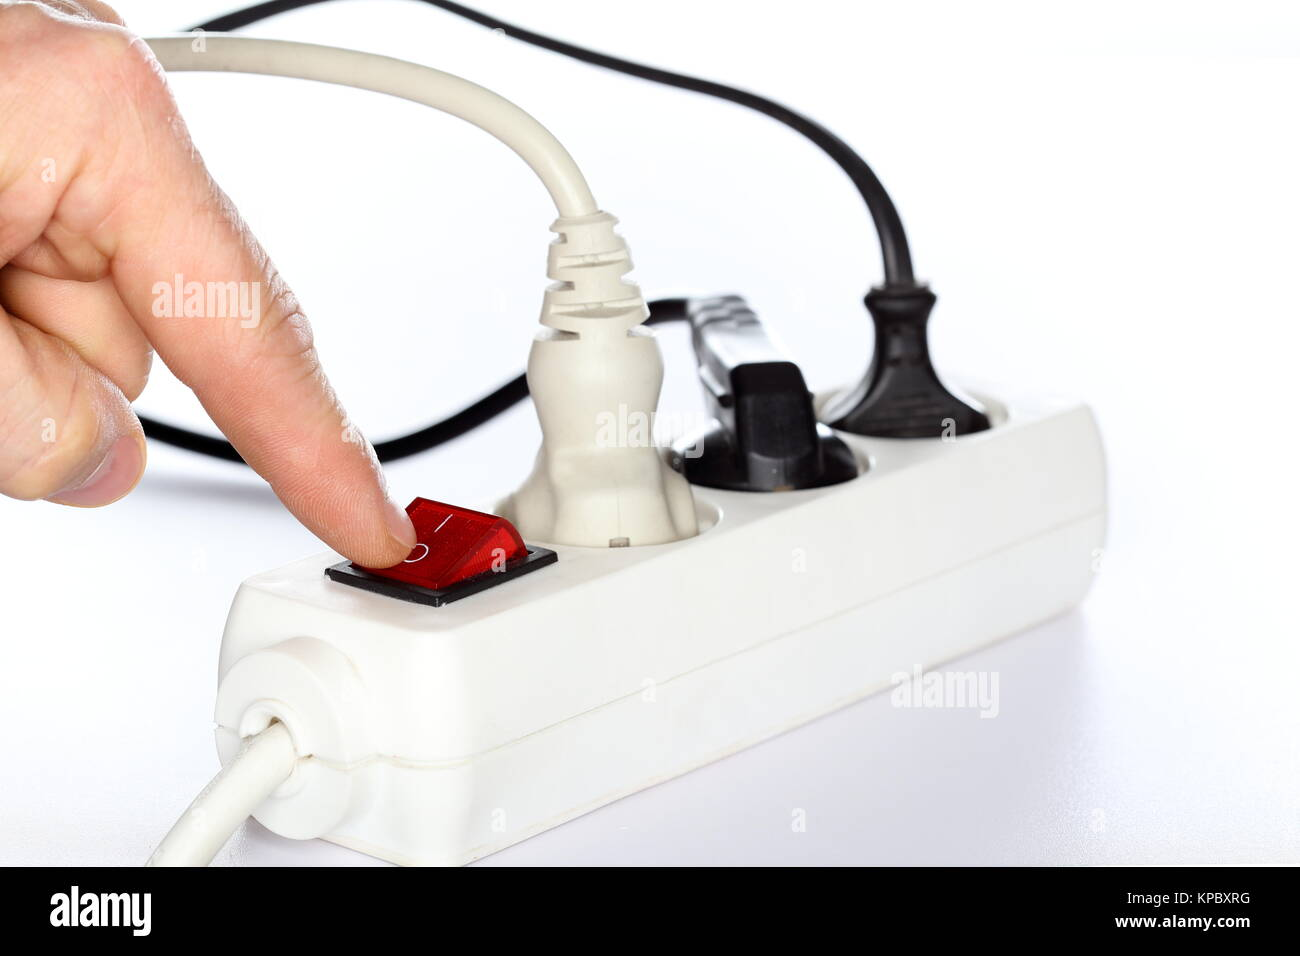 energy symbol with switch - Stock Image